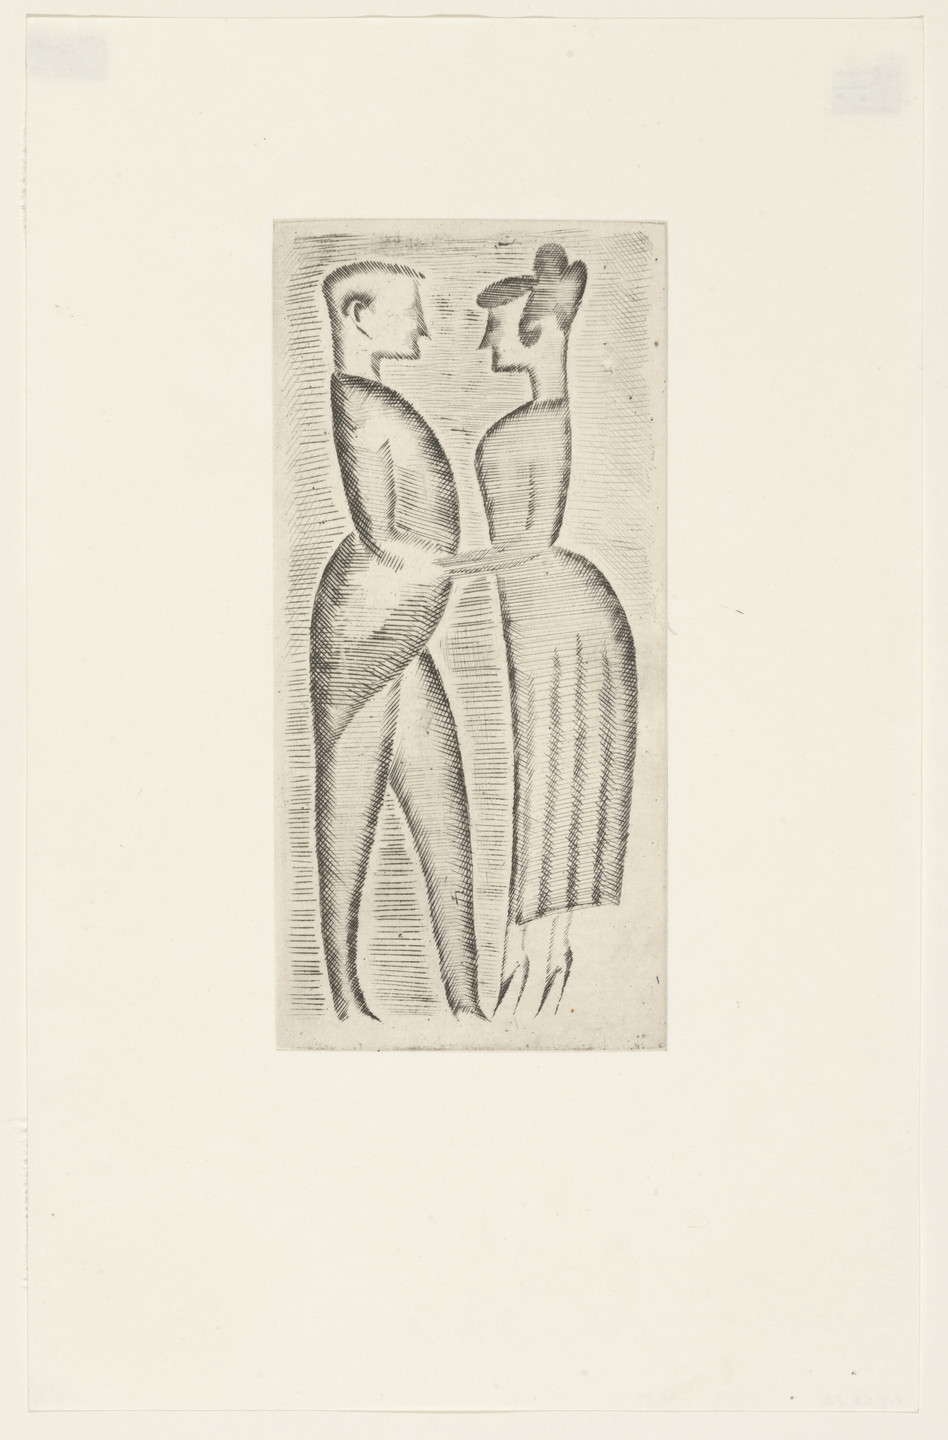 Elie Nadelman. Tango from The Drypoints of Elie Nadelman. 1951, published 1952